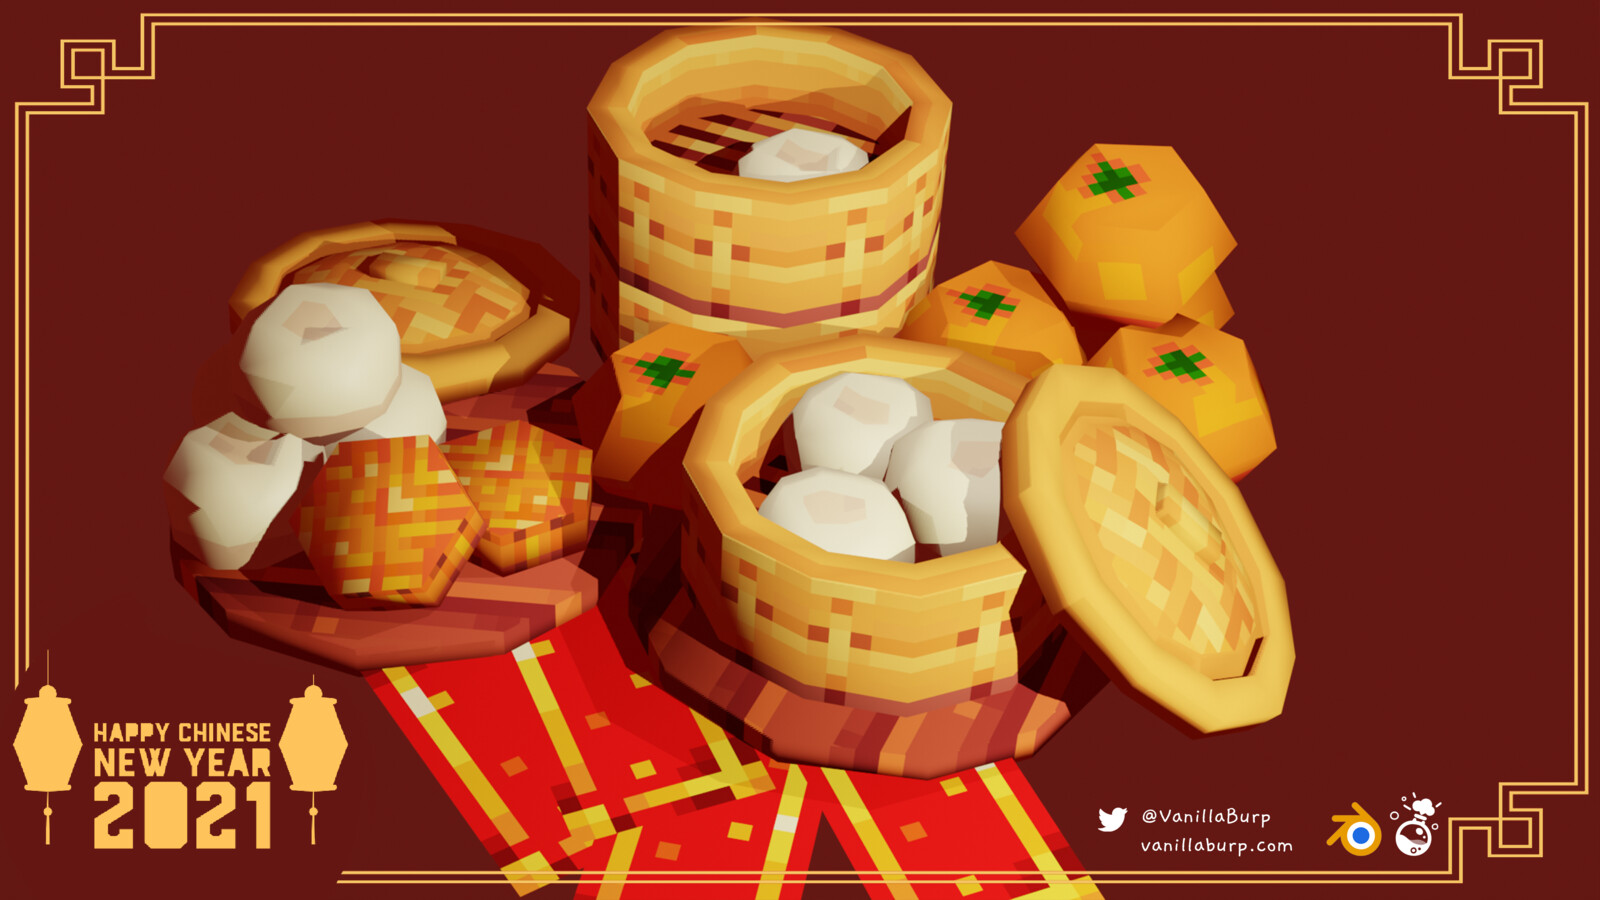 Pork buns & Mooncakes | Chinese New Year 2021